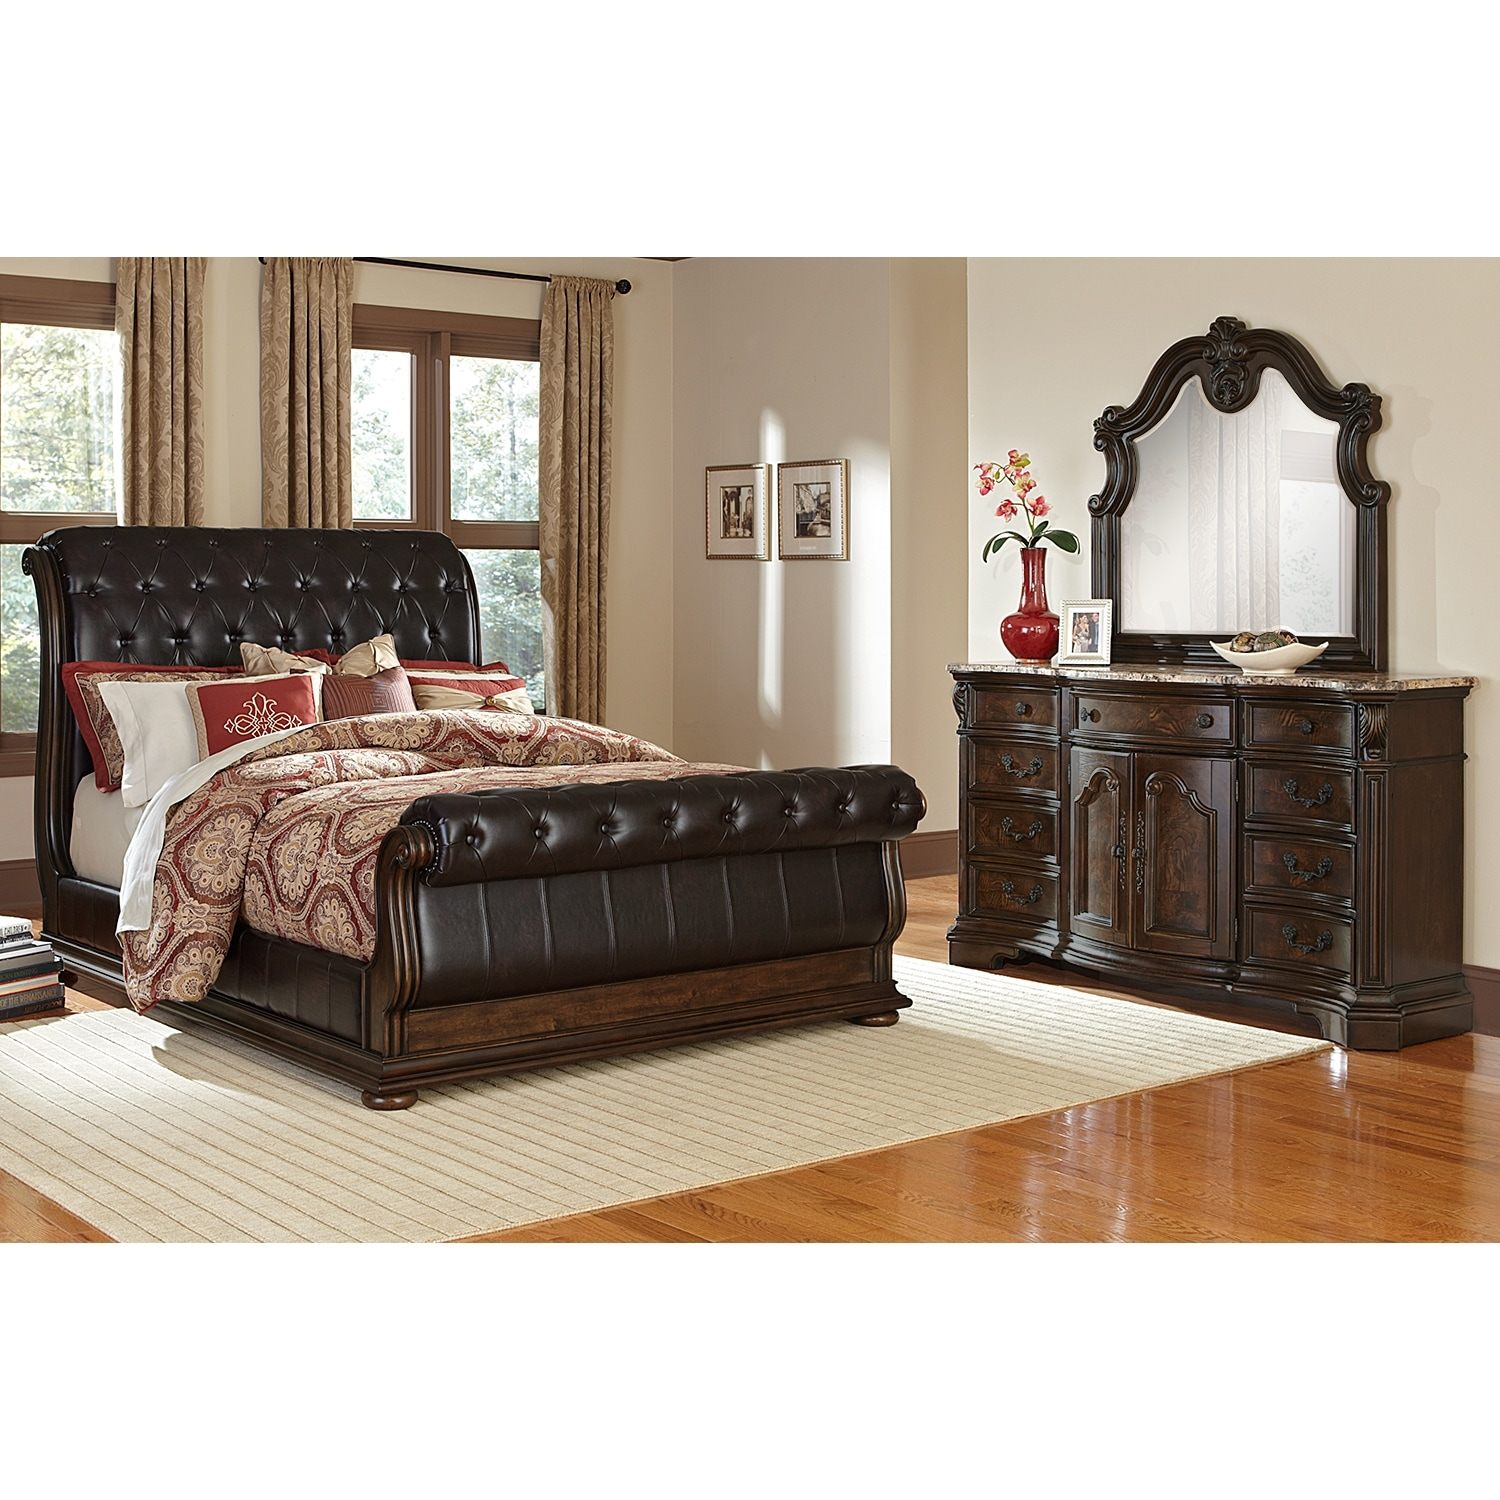 Monticello pecan ii 5 pc king bedroom value city furniture for 5 bedroom